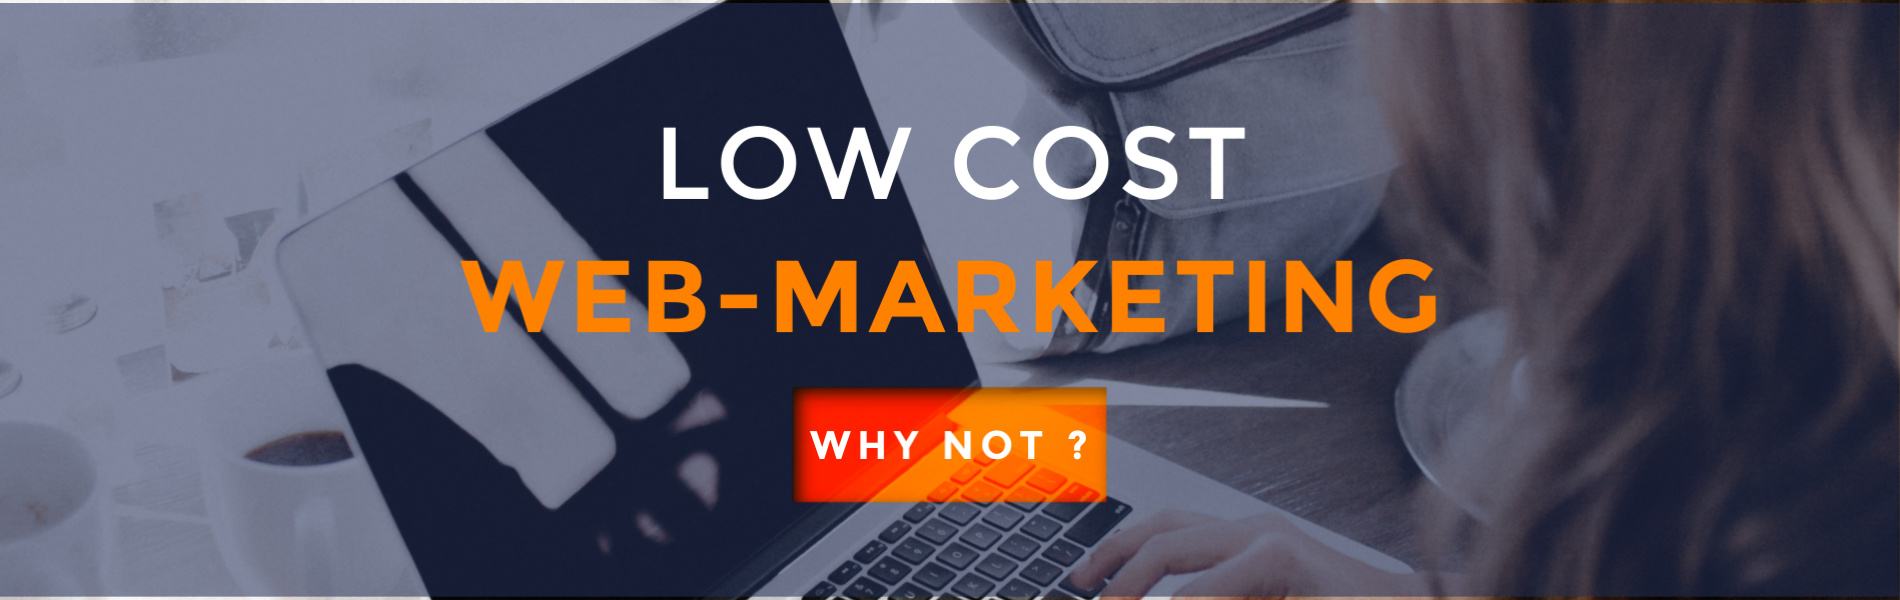 Low Cost Web Marketing